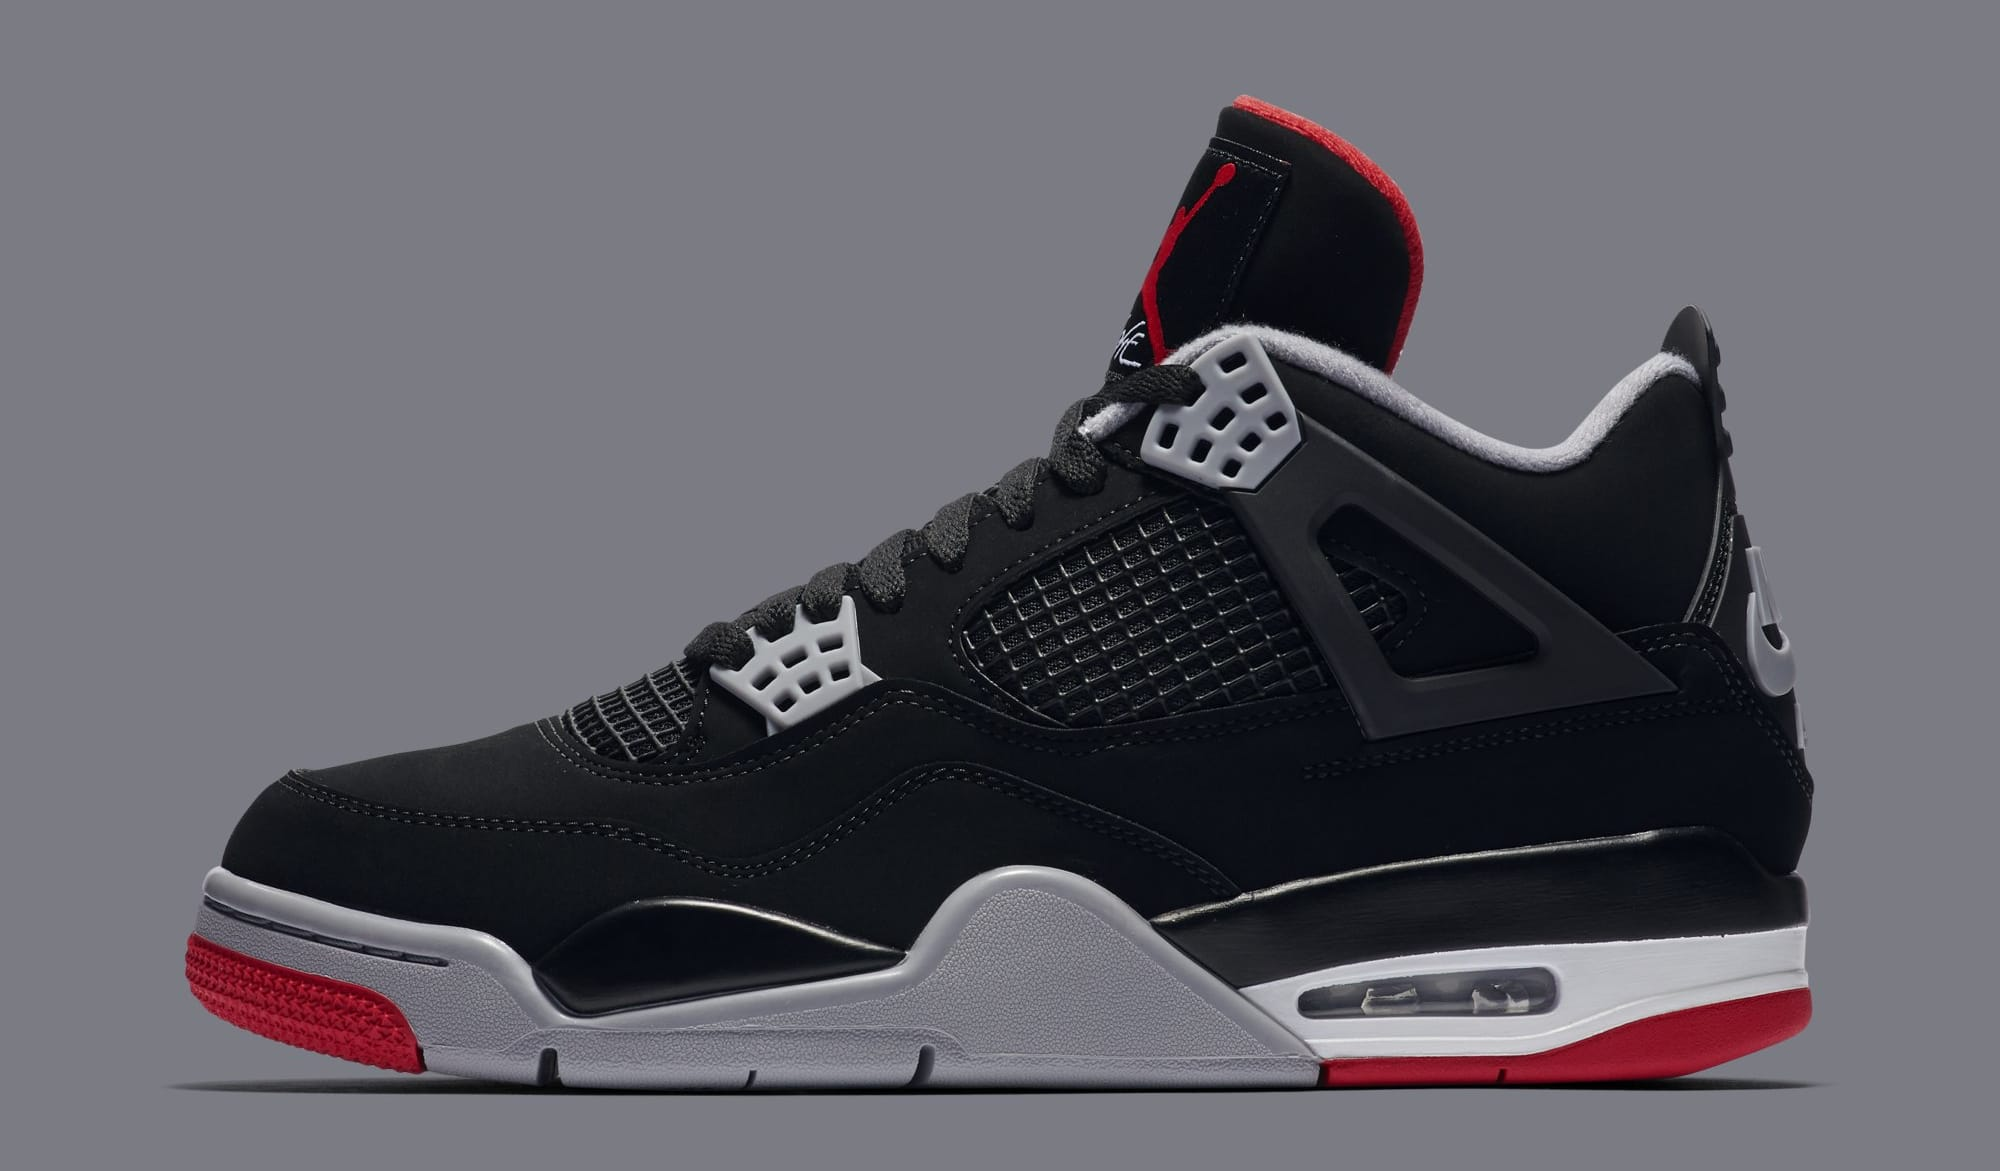 Air Jordan 4 'Bred' 308497-060 (Lateral)